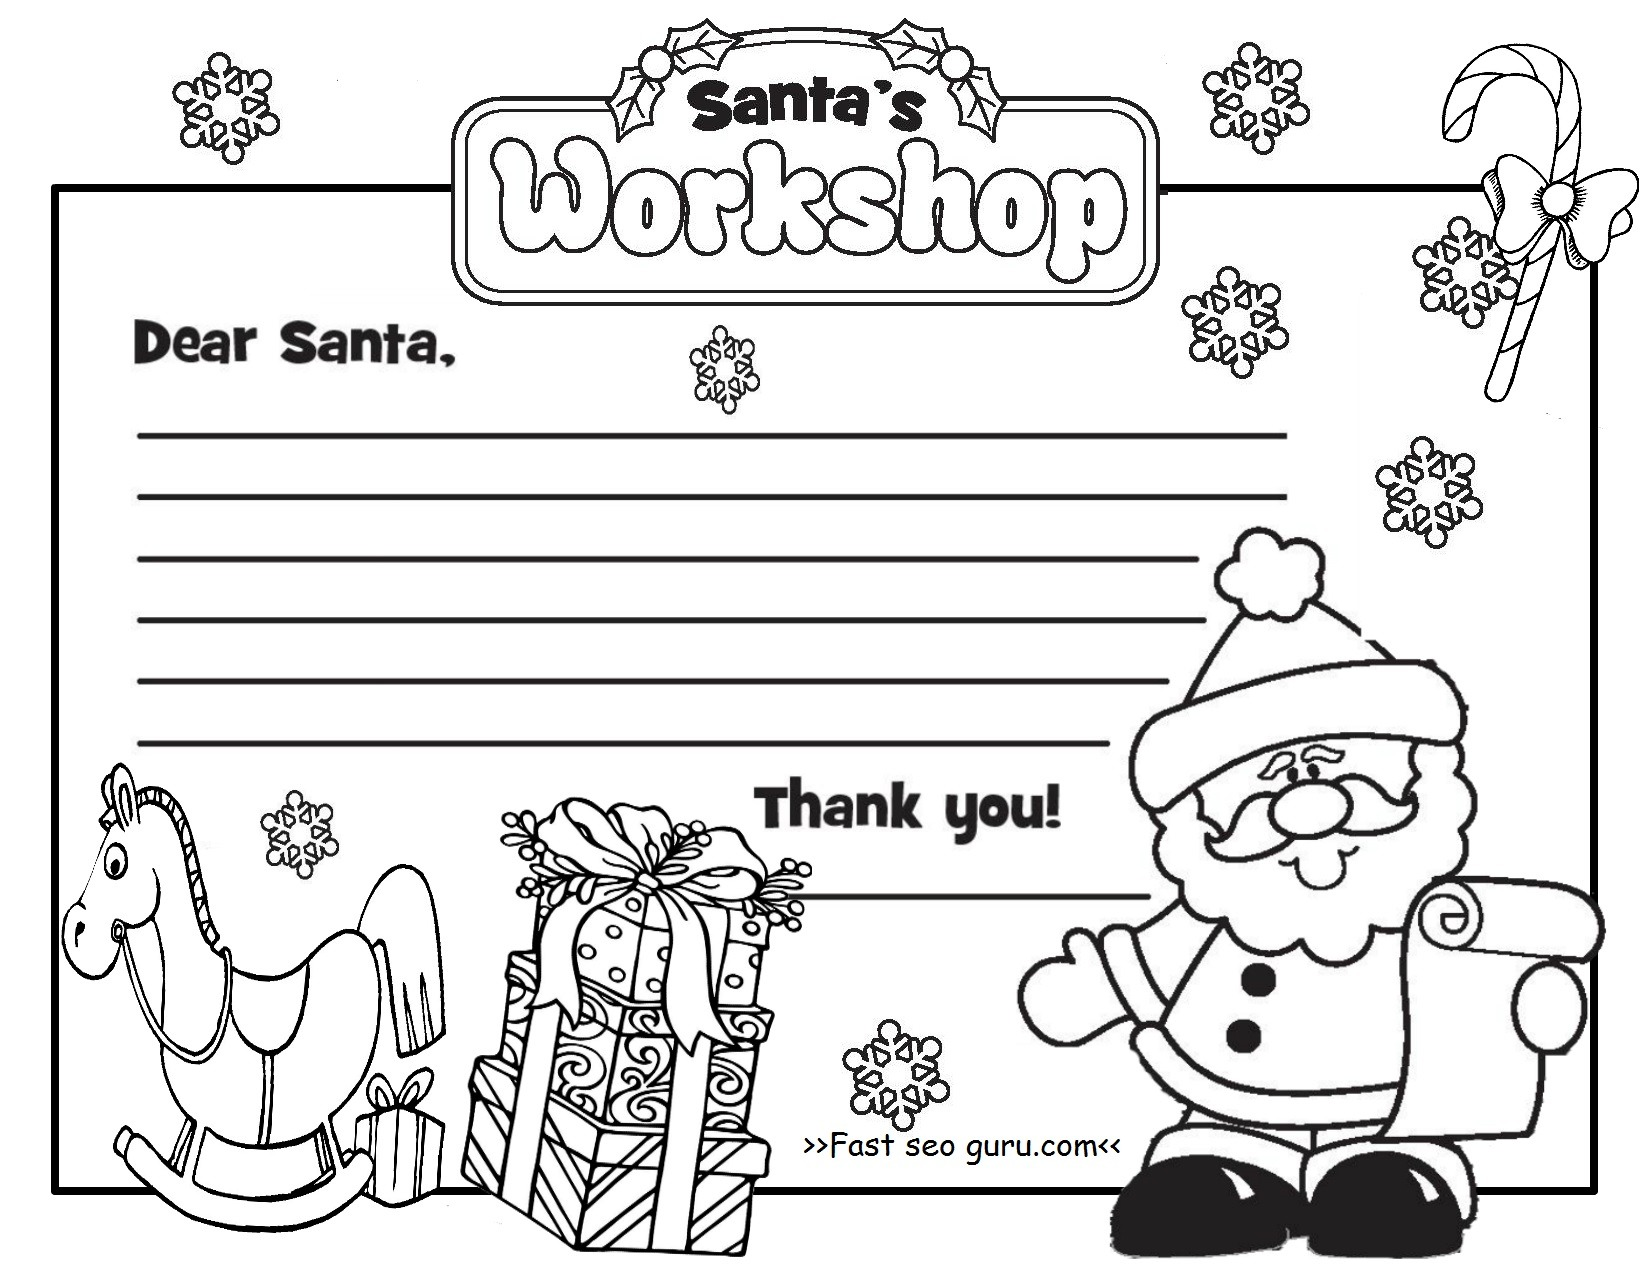 Christmas Coloring Pages Santa S Workshop With Claus On His Sleigh Free Village